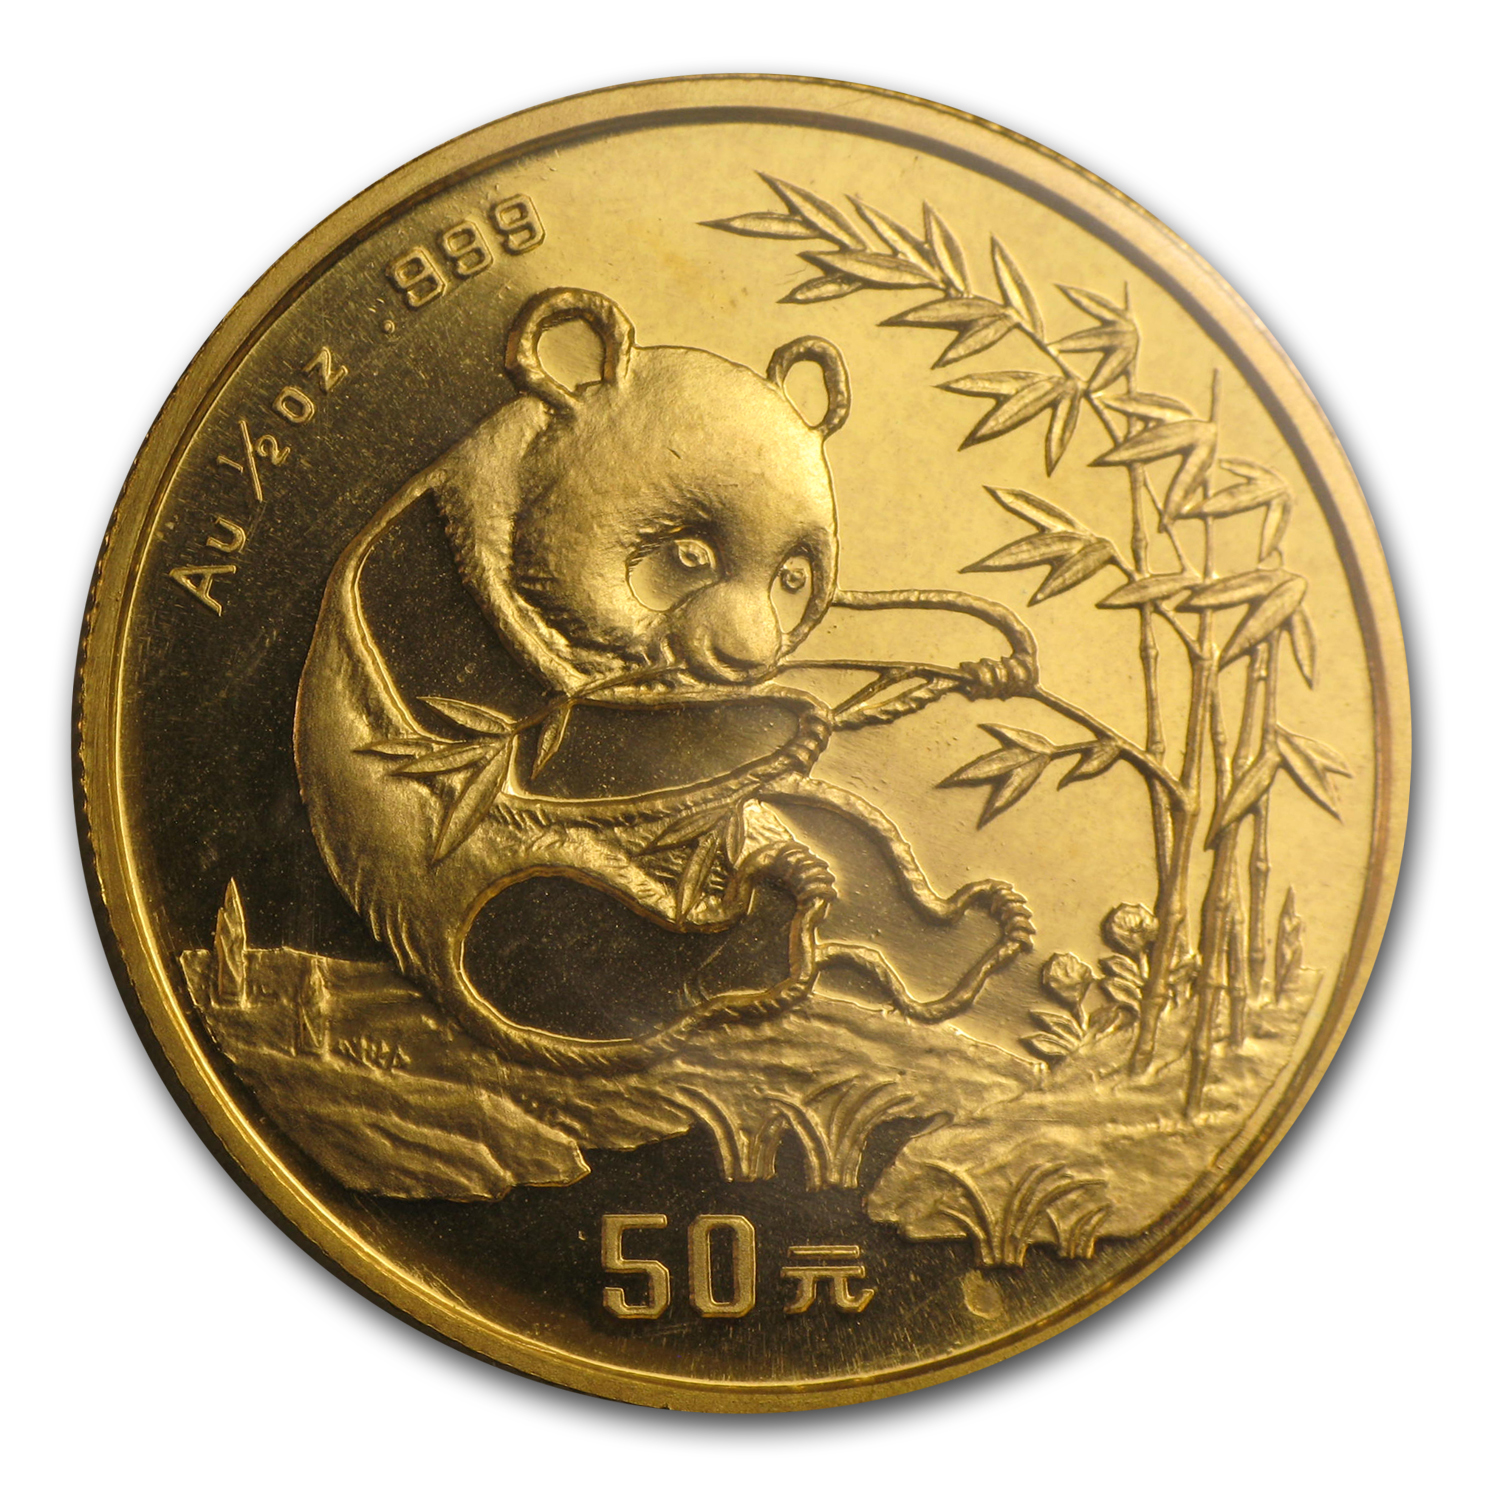 1994 China 1/2 oz Gold Panda Small Date BU (Sealed)